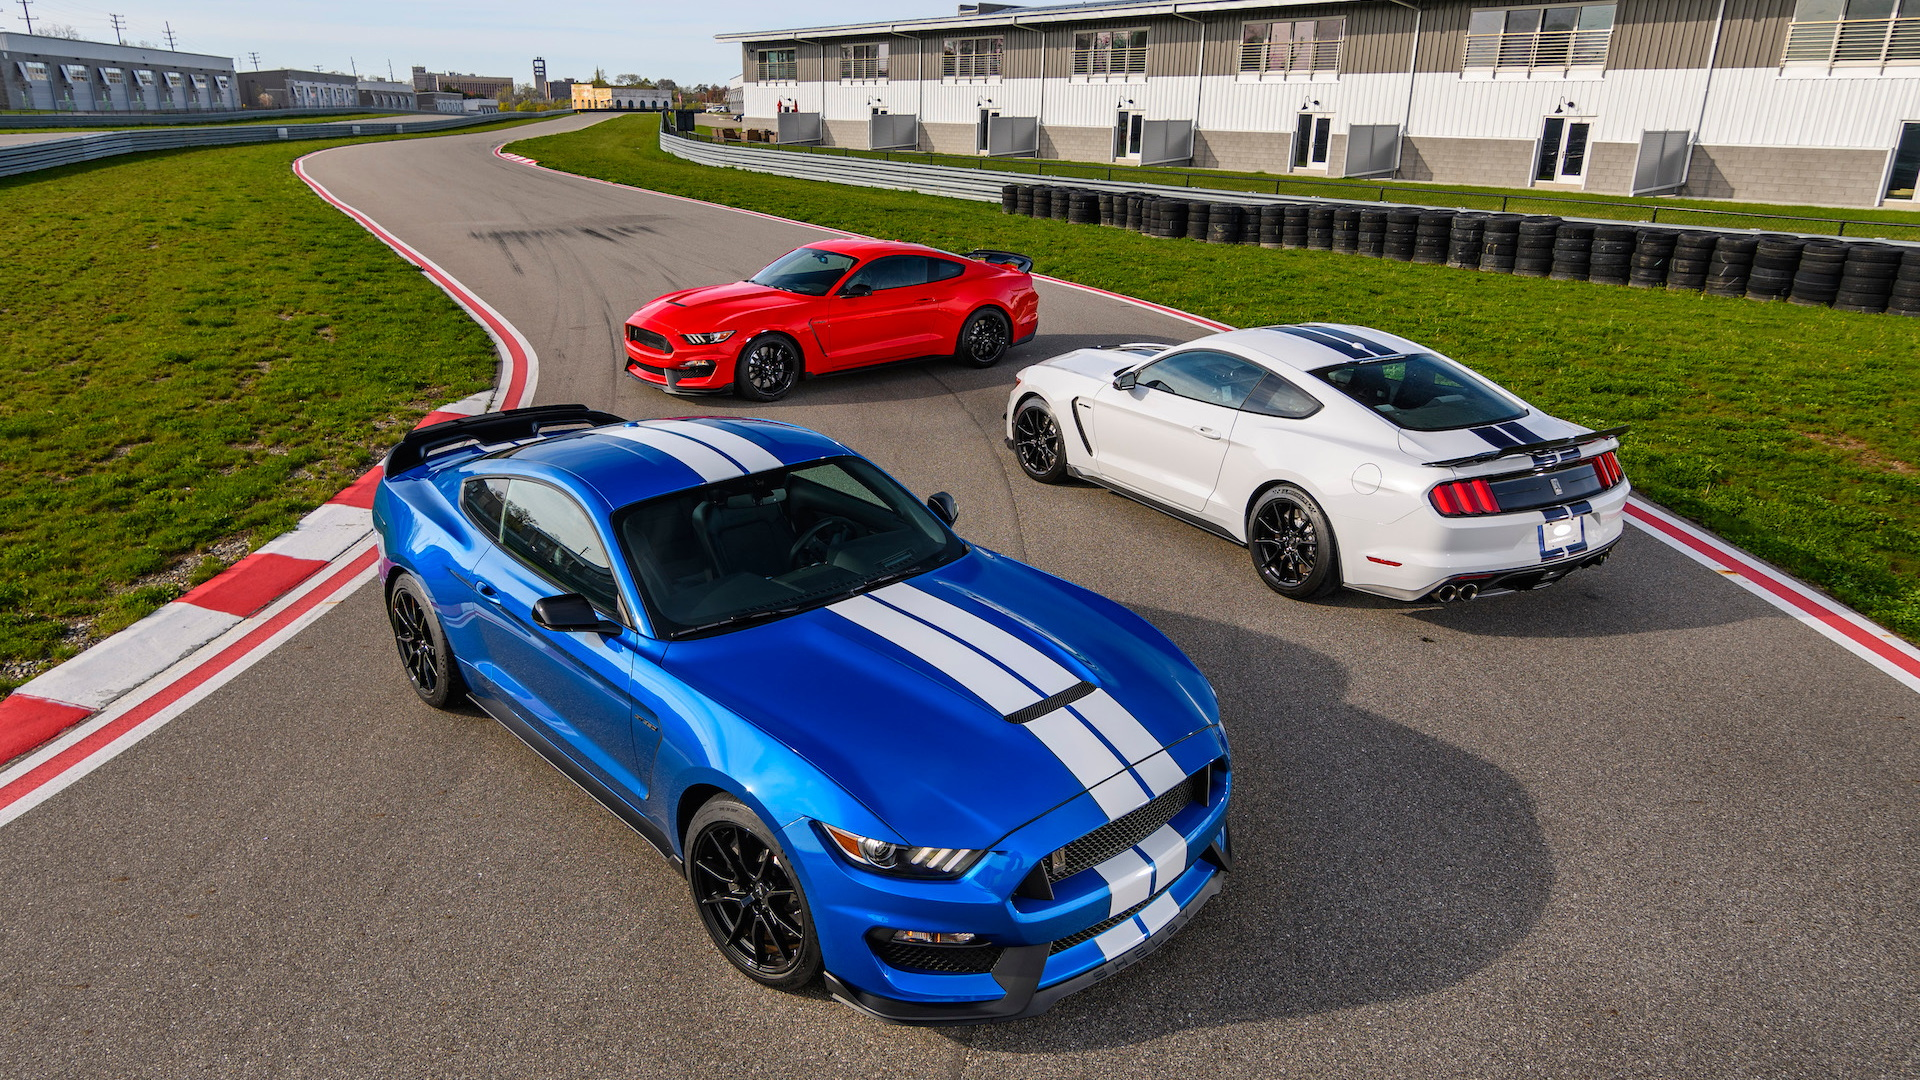 First drive review: 2019 Ford Mustang Shelby GT350 gets a